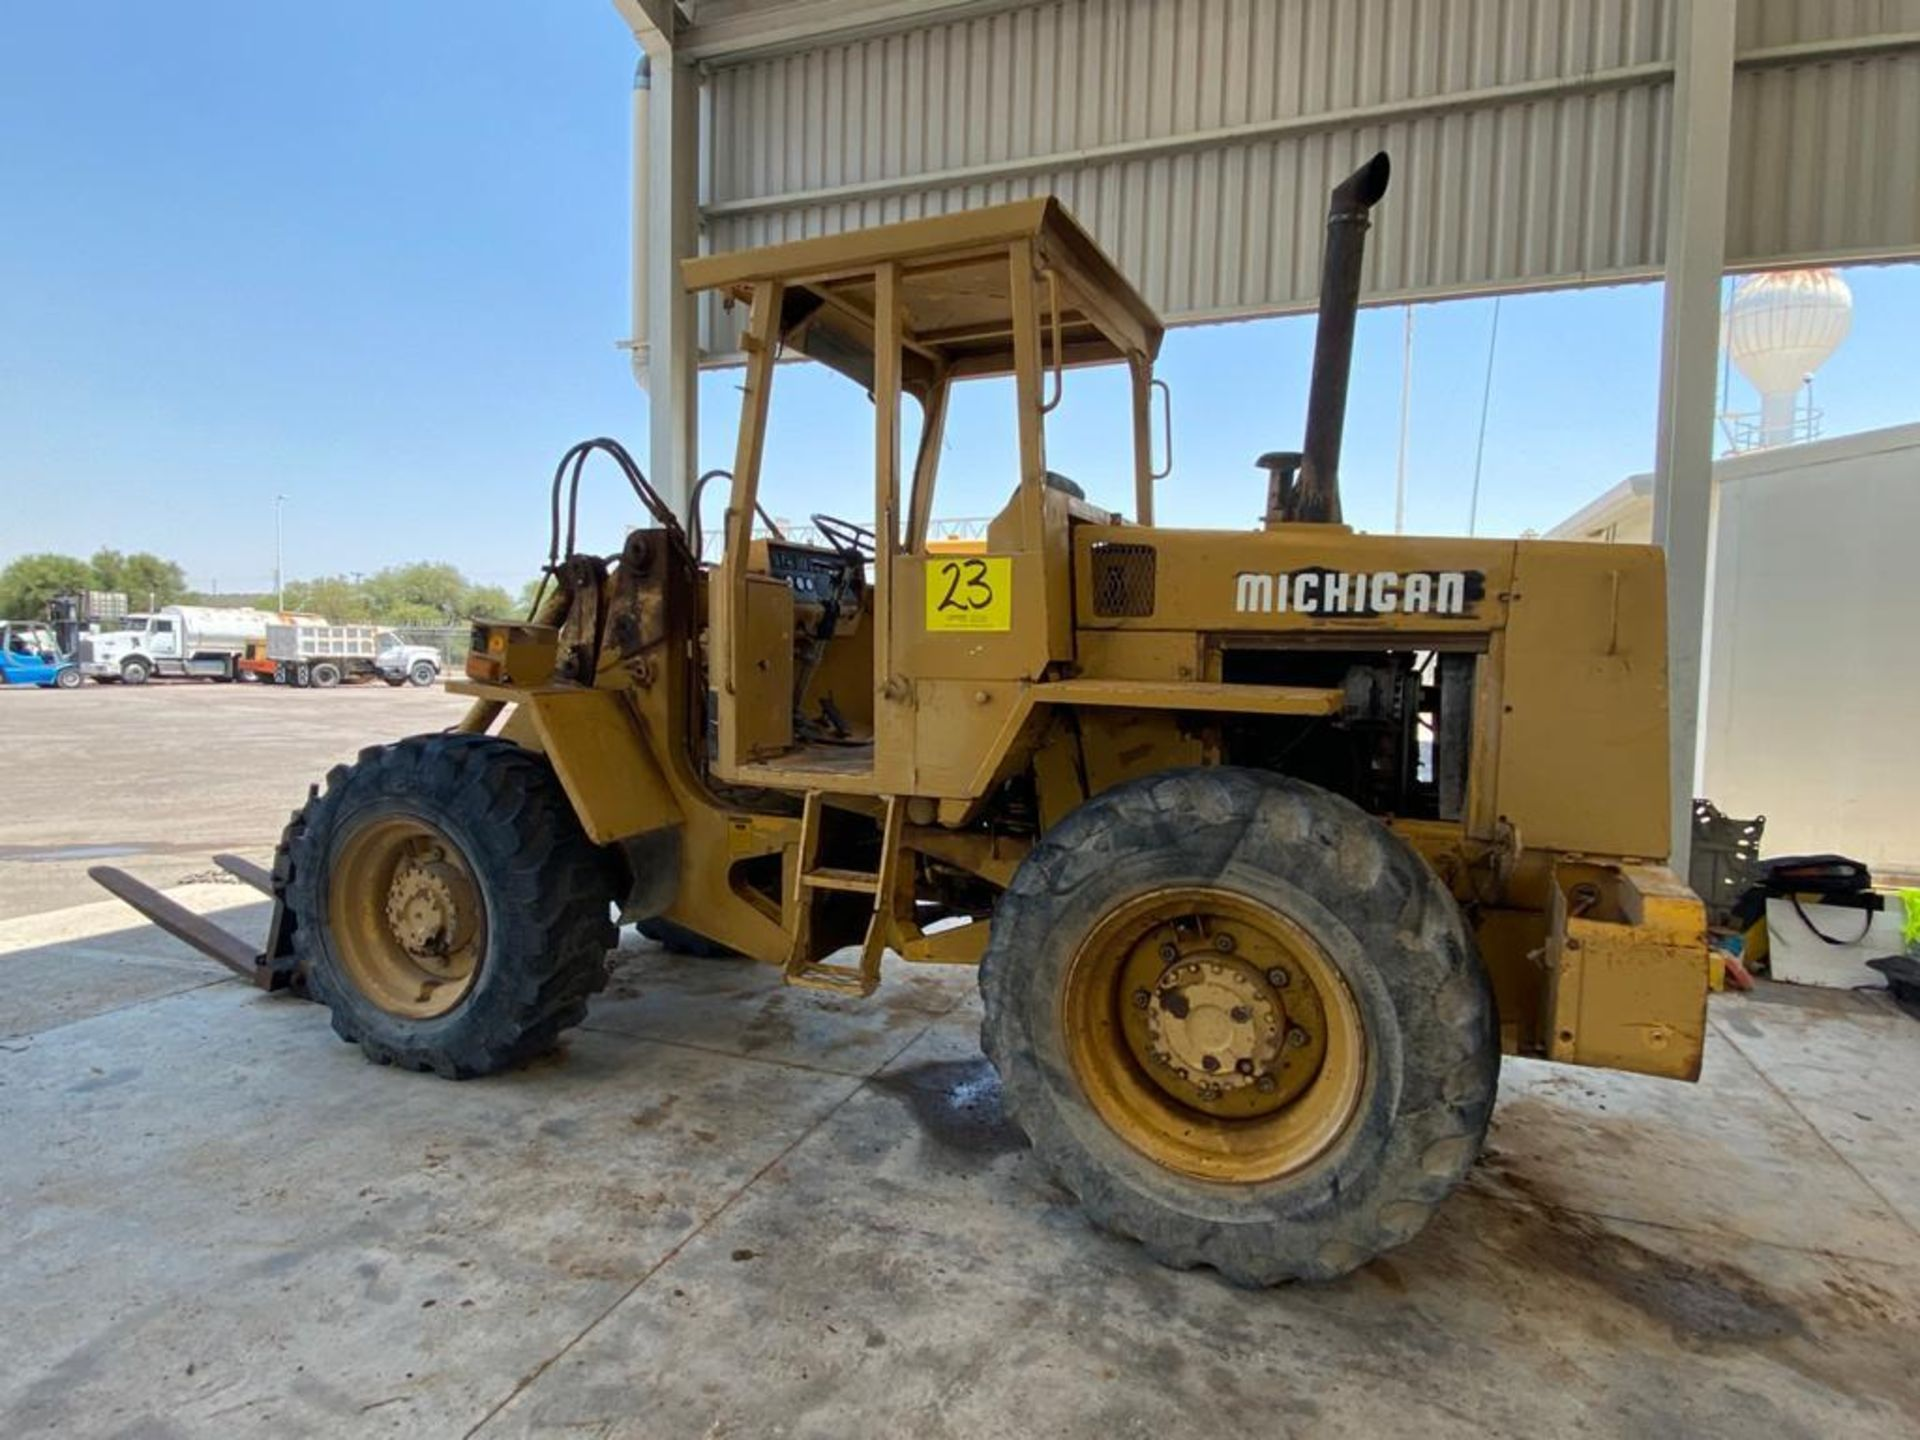 Volvo BM TYPE L 30 Michigan Front Loder, automatic transmission - Image 16 of 53